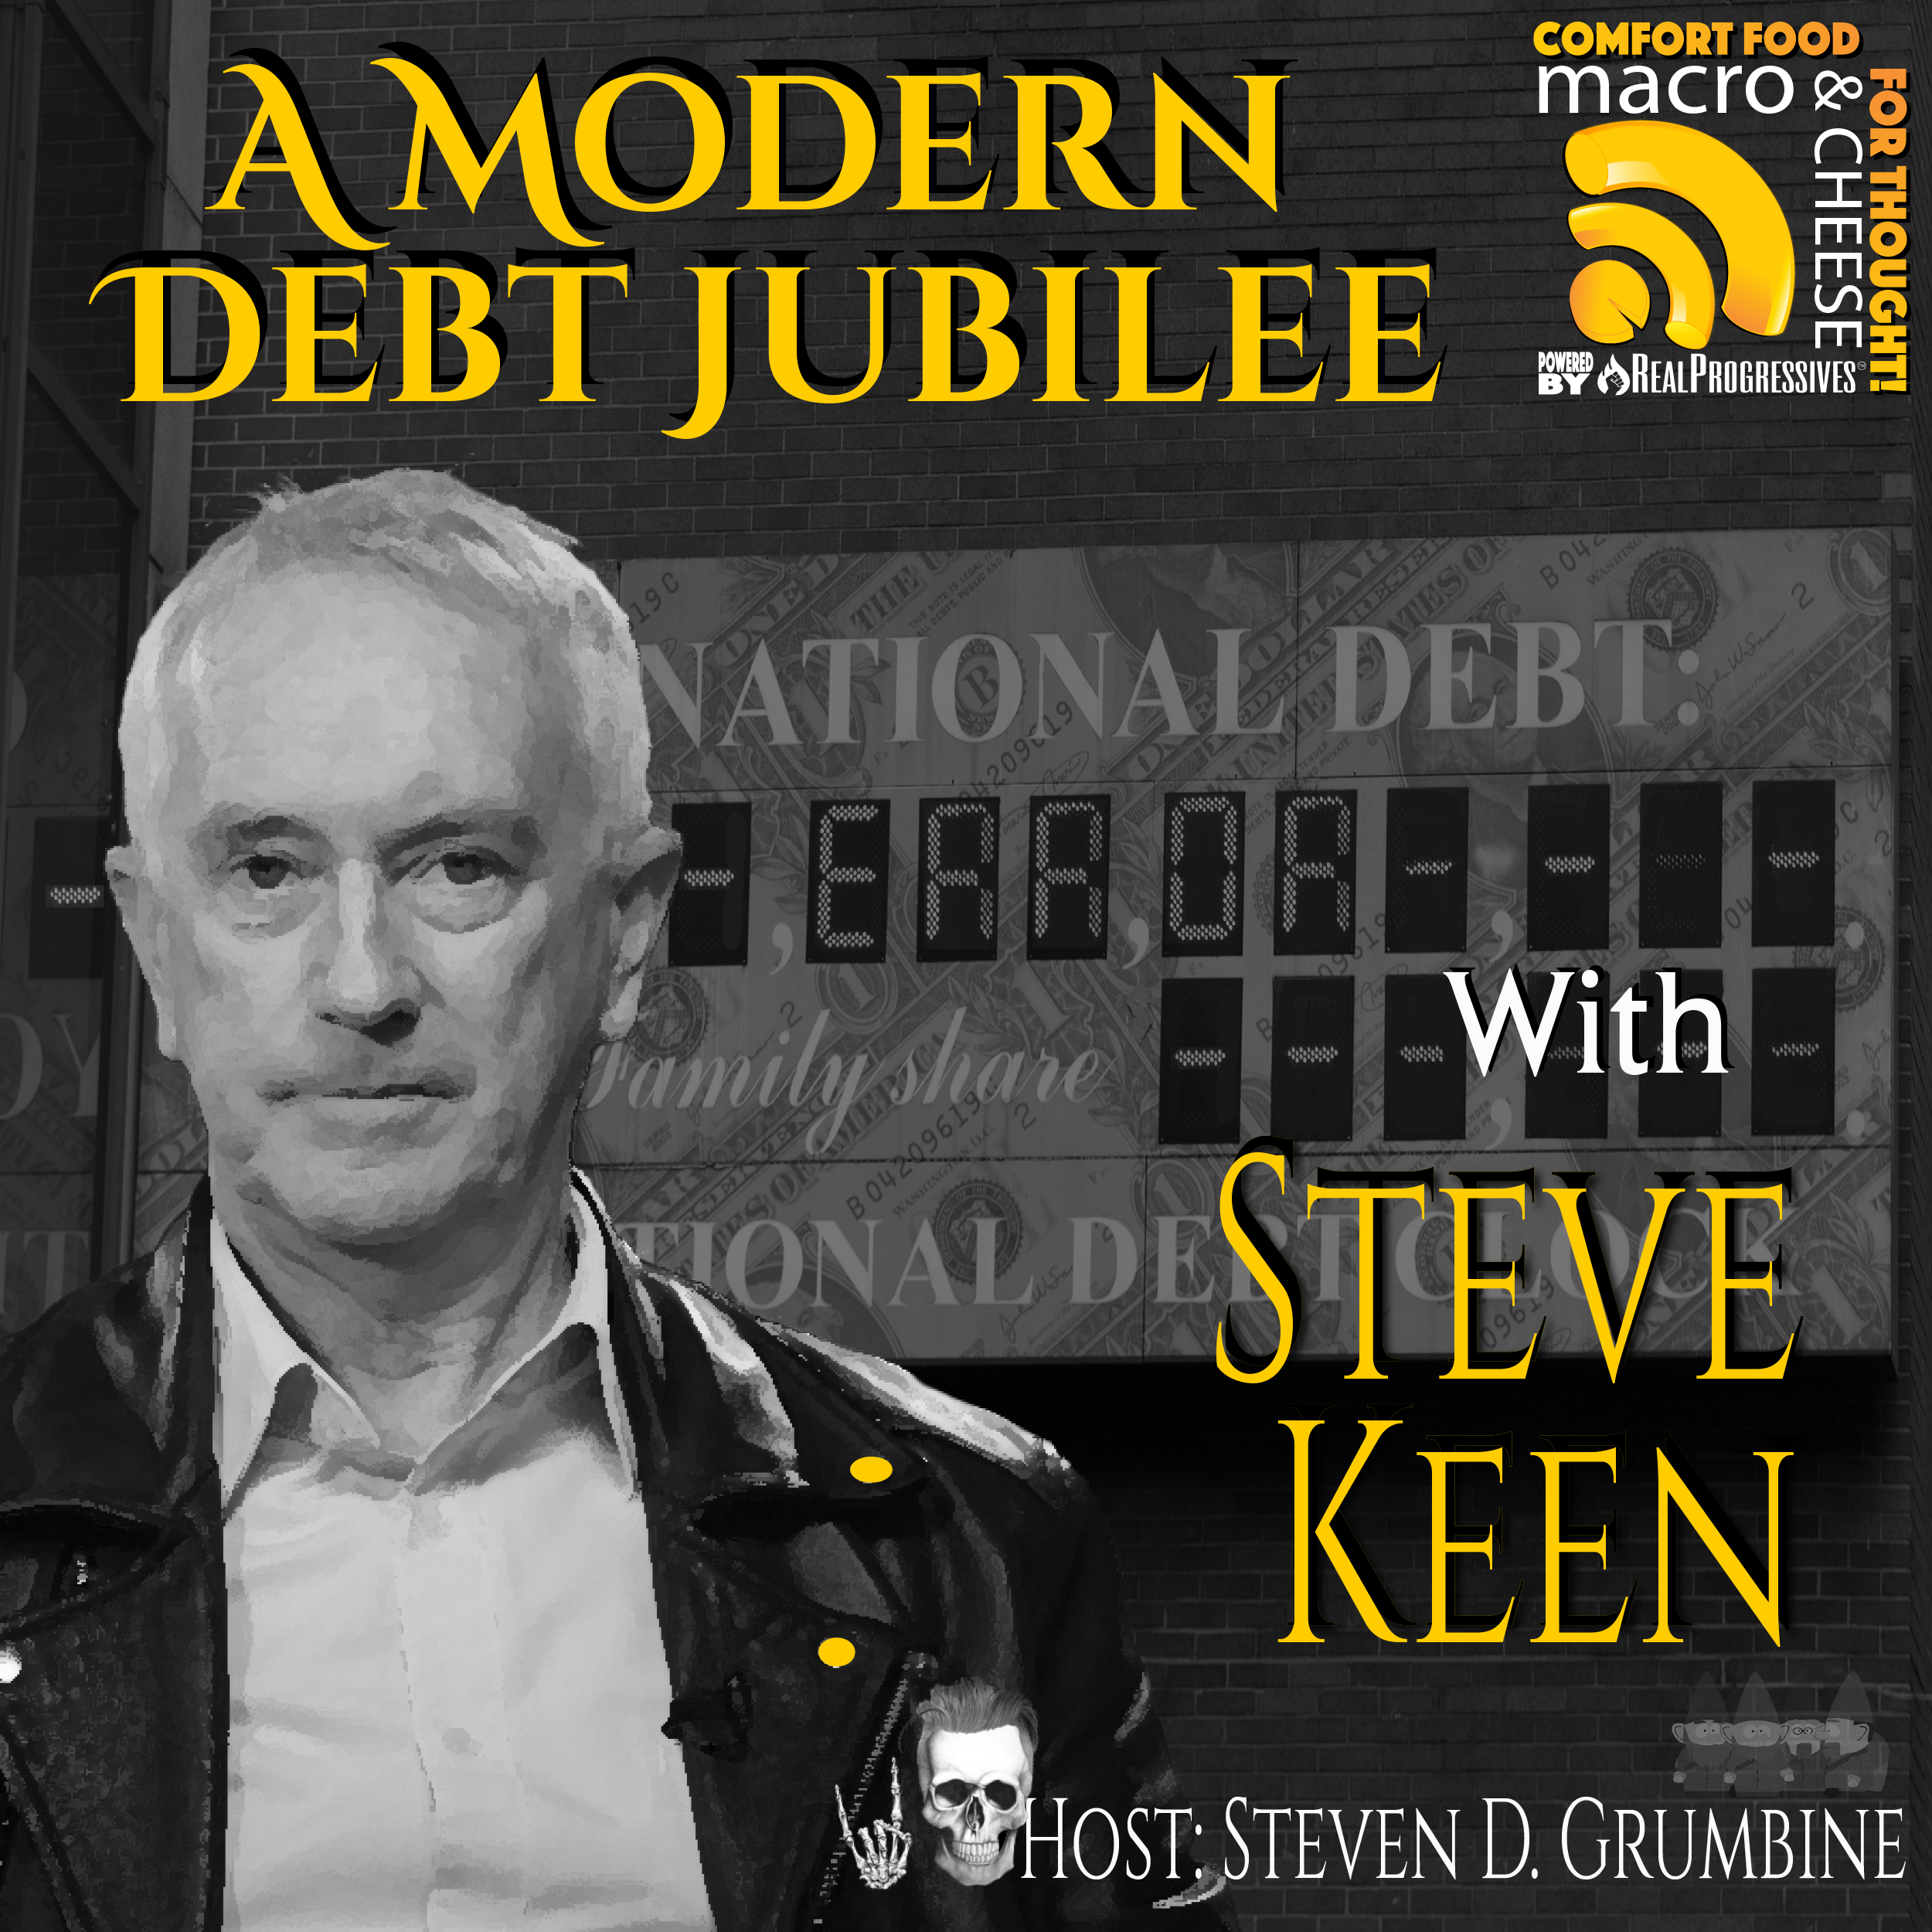 A Modern Debt Jubilee with Steve Keen